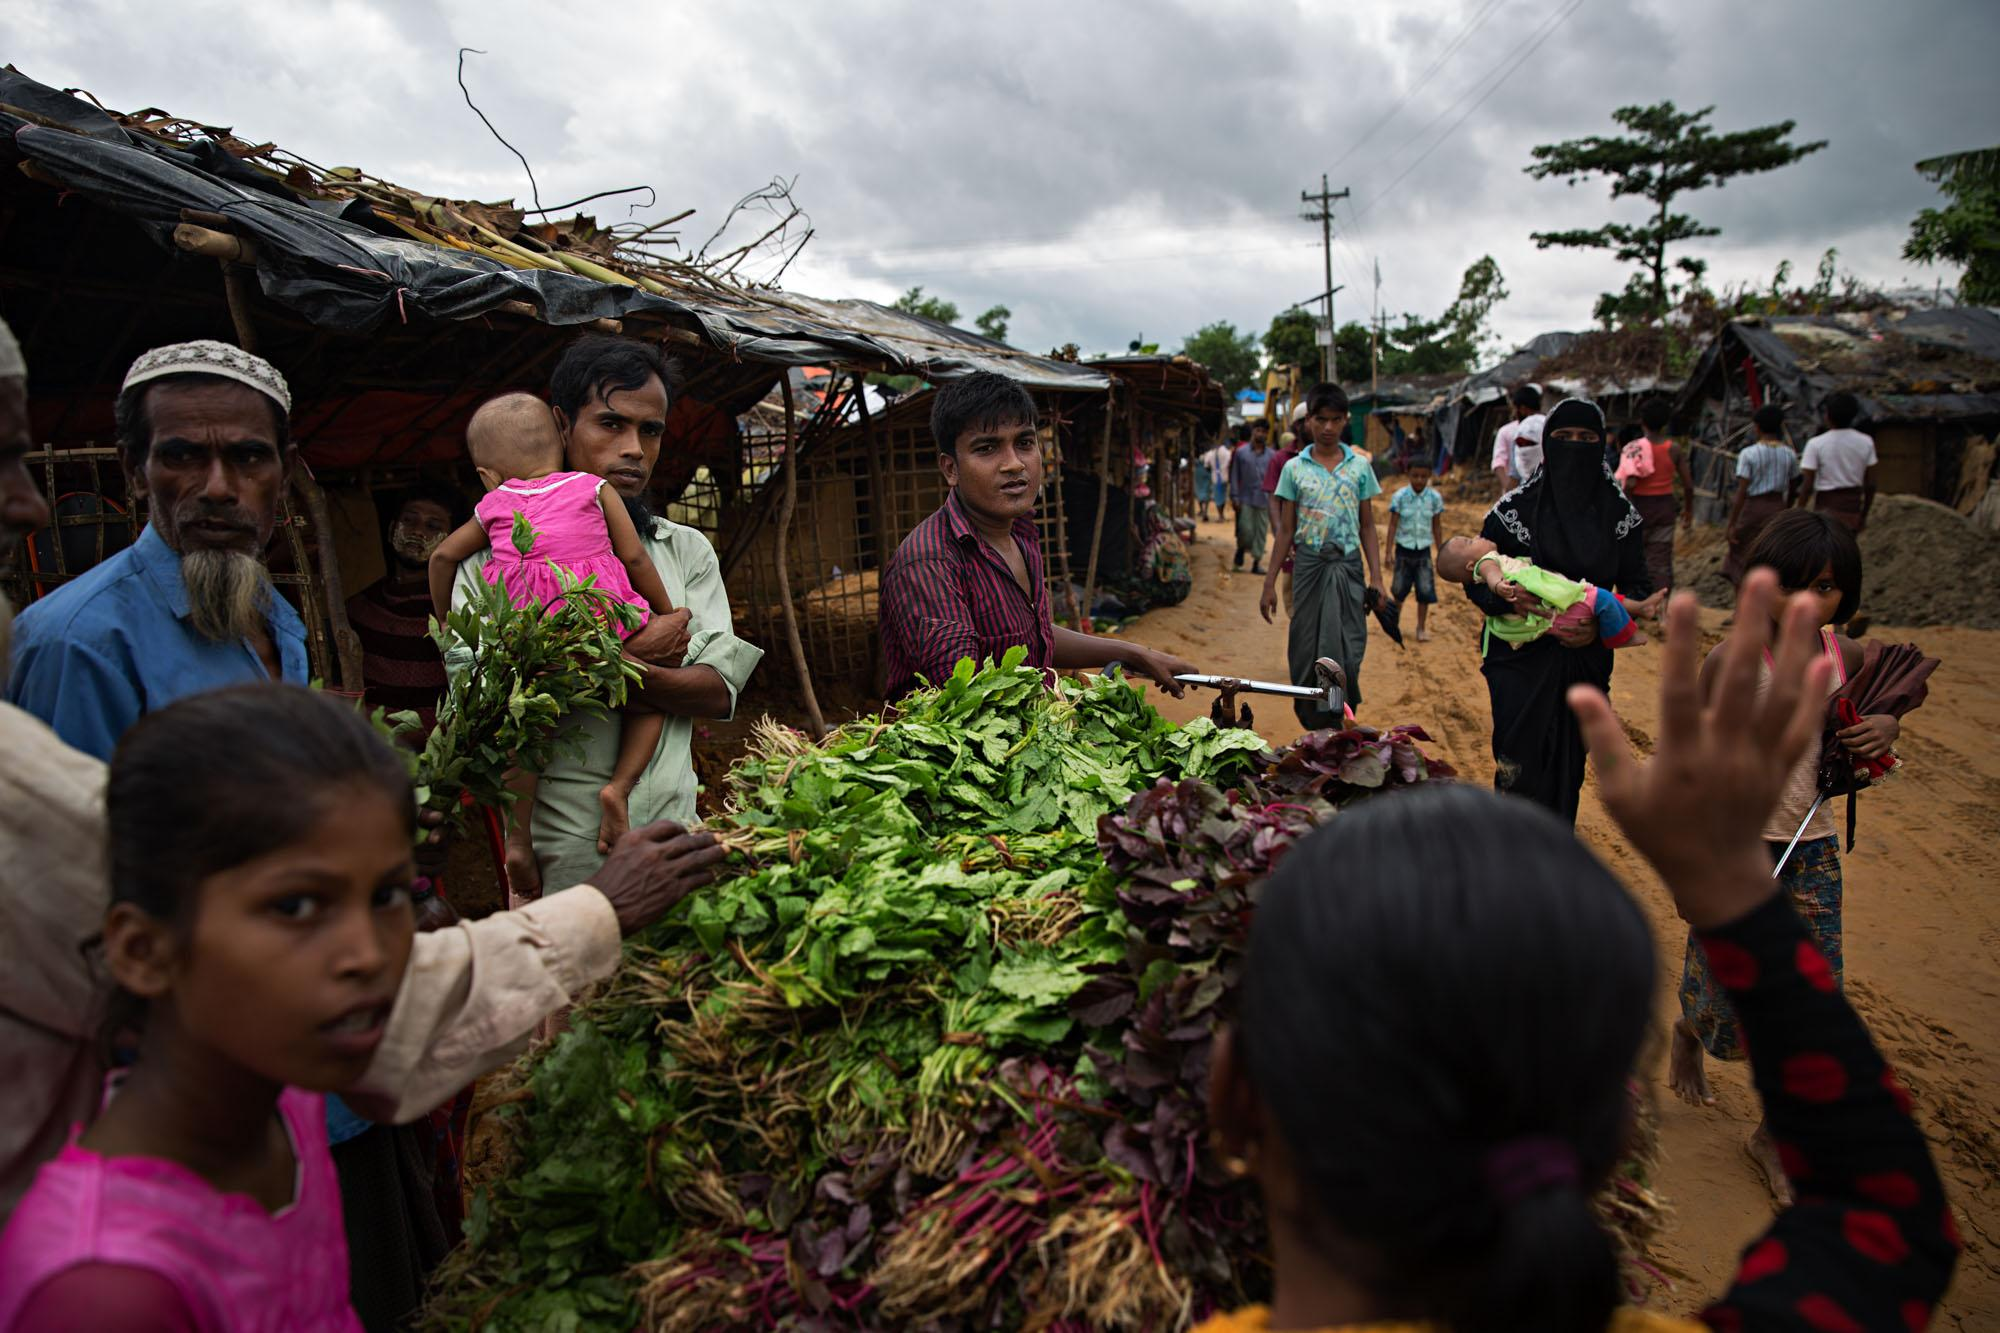 Rohingya refugees sell and buy vegetables in a camp outside of Cox's Bazar, Bangladesh.